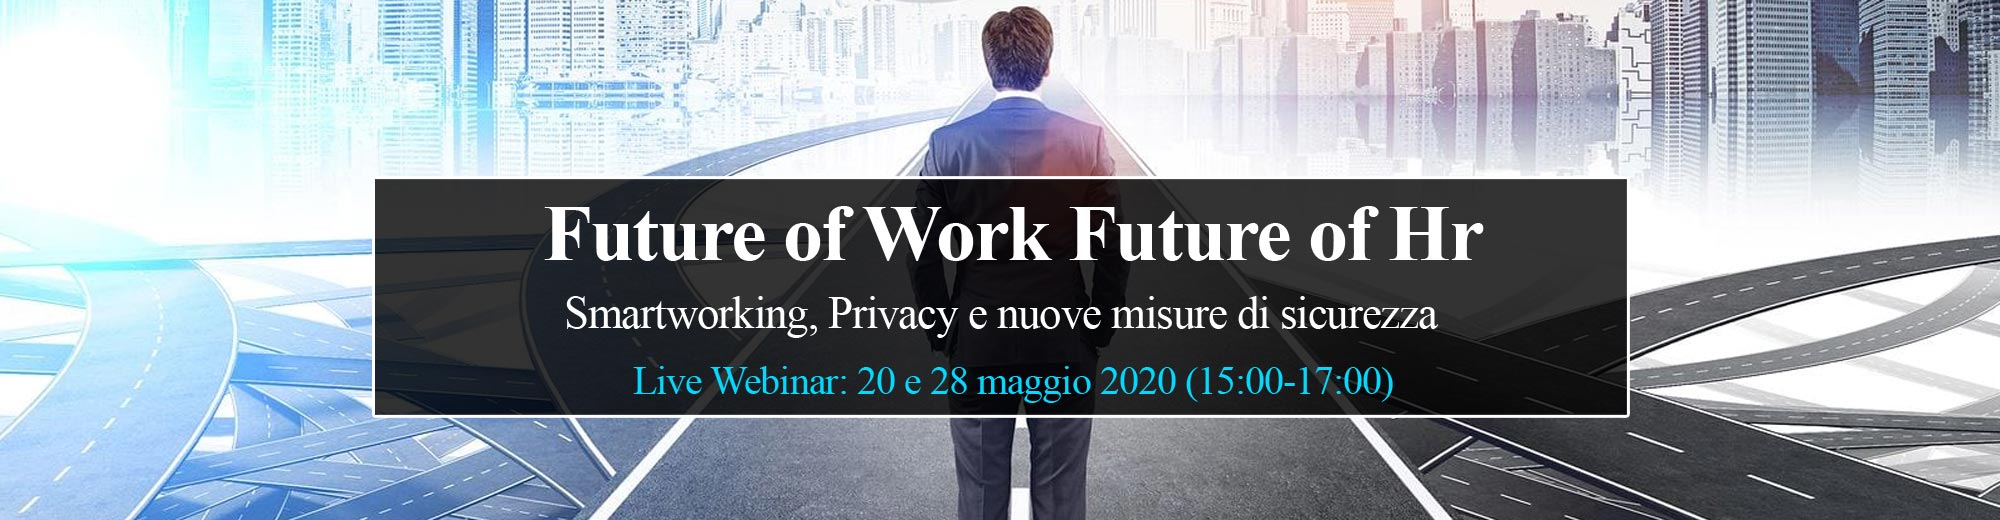 Future of Work Future of Hr